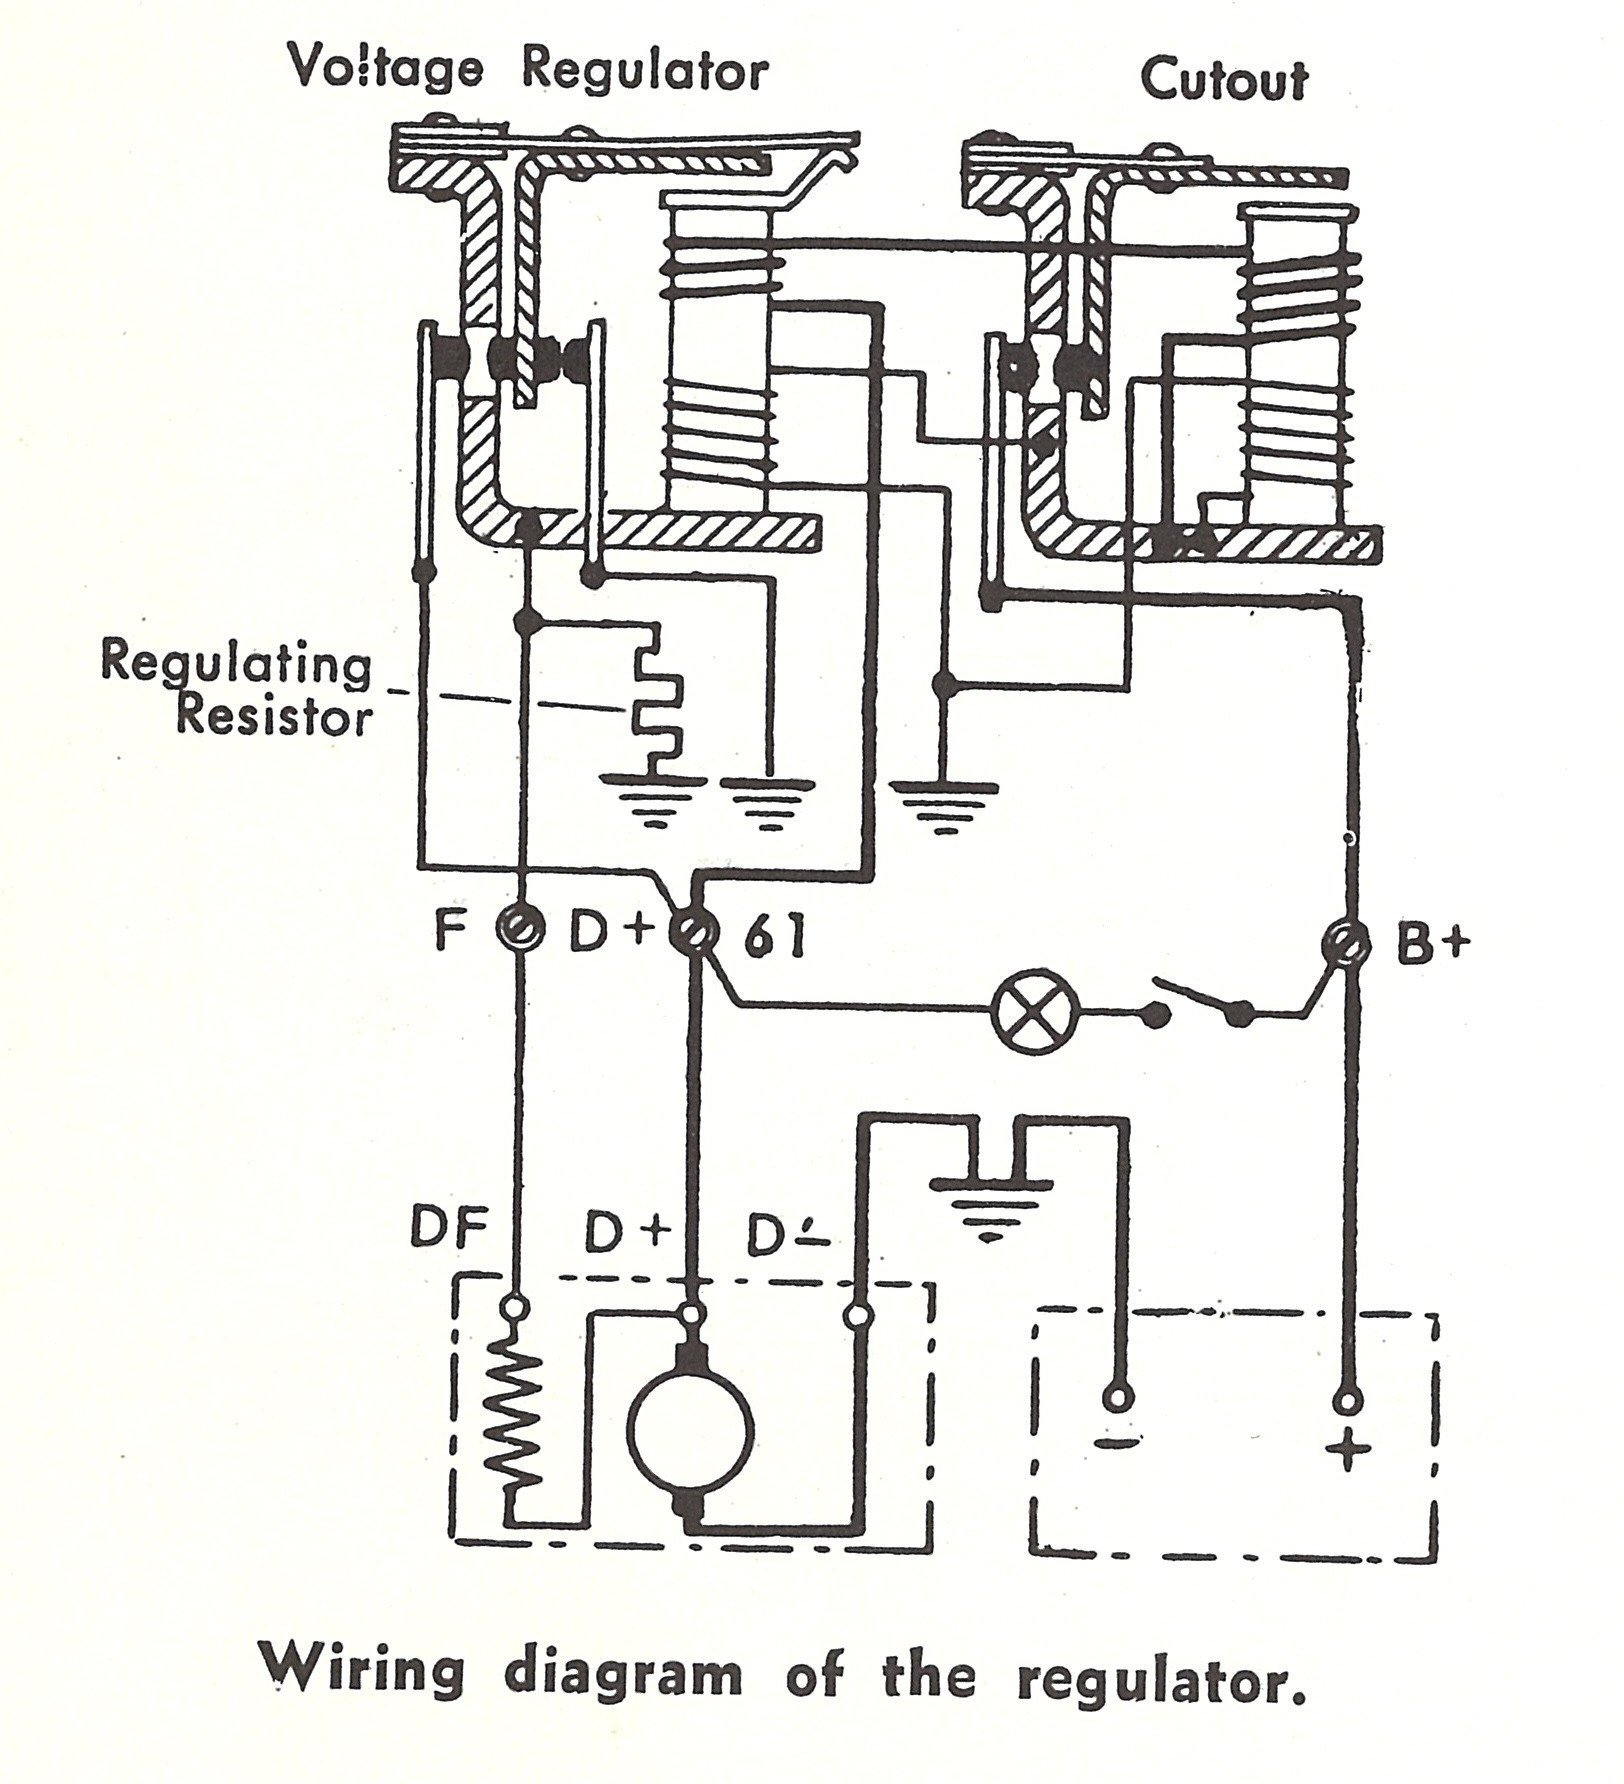 voltage_regulator_diagram_closeup wiring diagram new era voltage regulator wiring diagram and new era voltage regulator wiring diagram at couponss.co